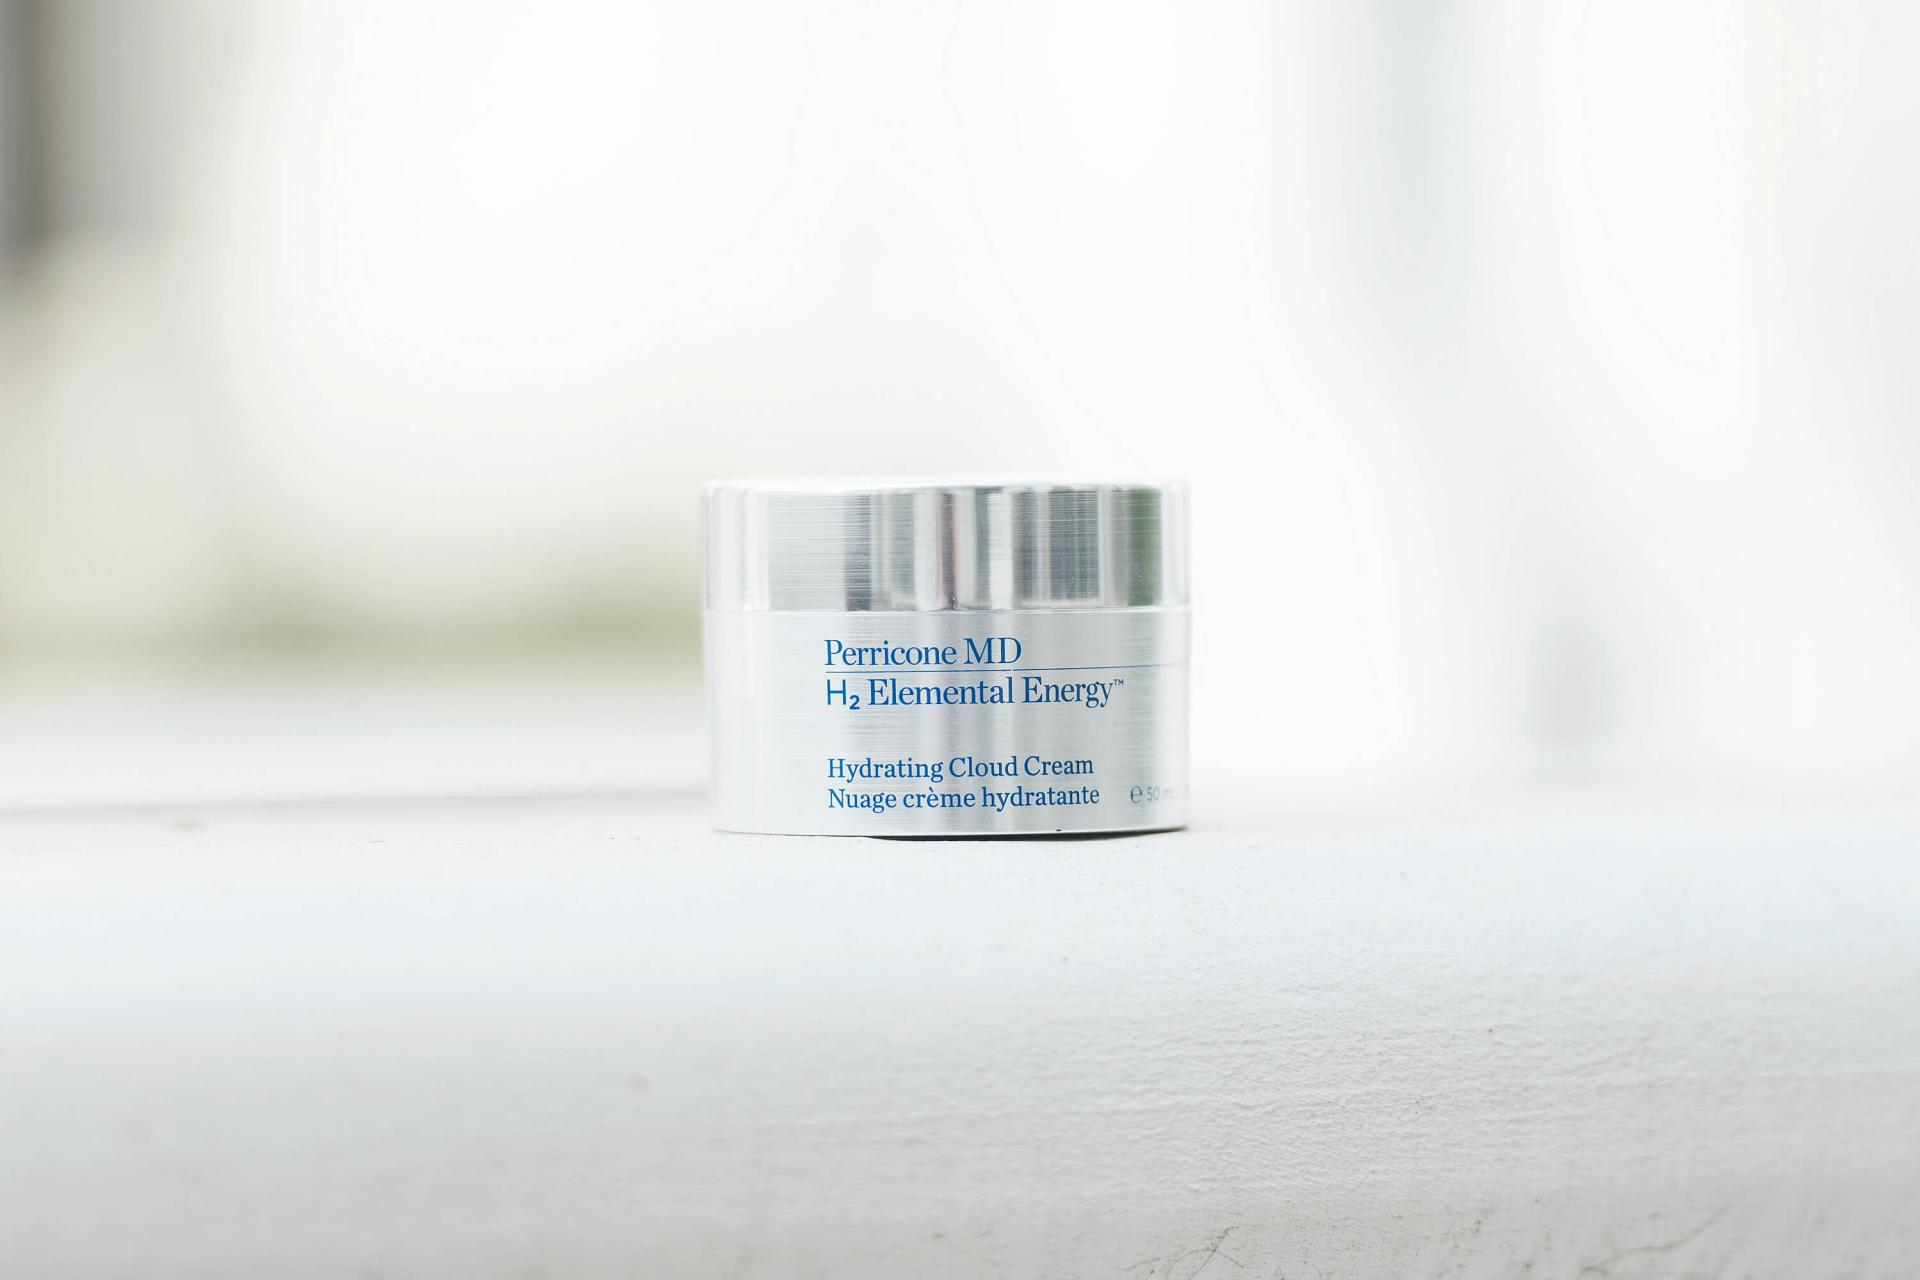 Perricone MD Hydrating Cloud Cream Review